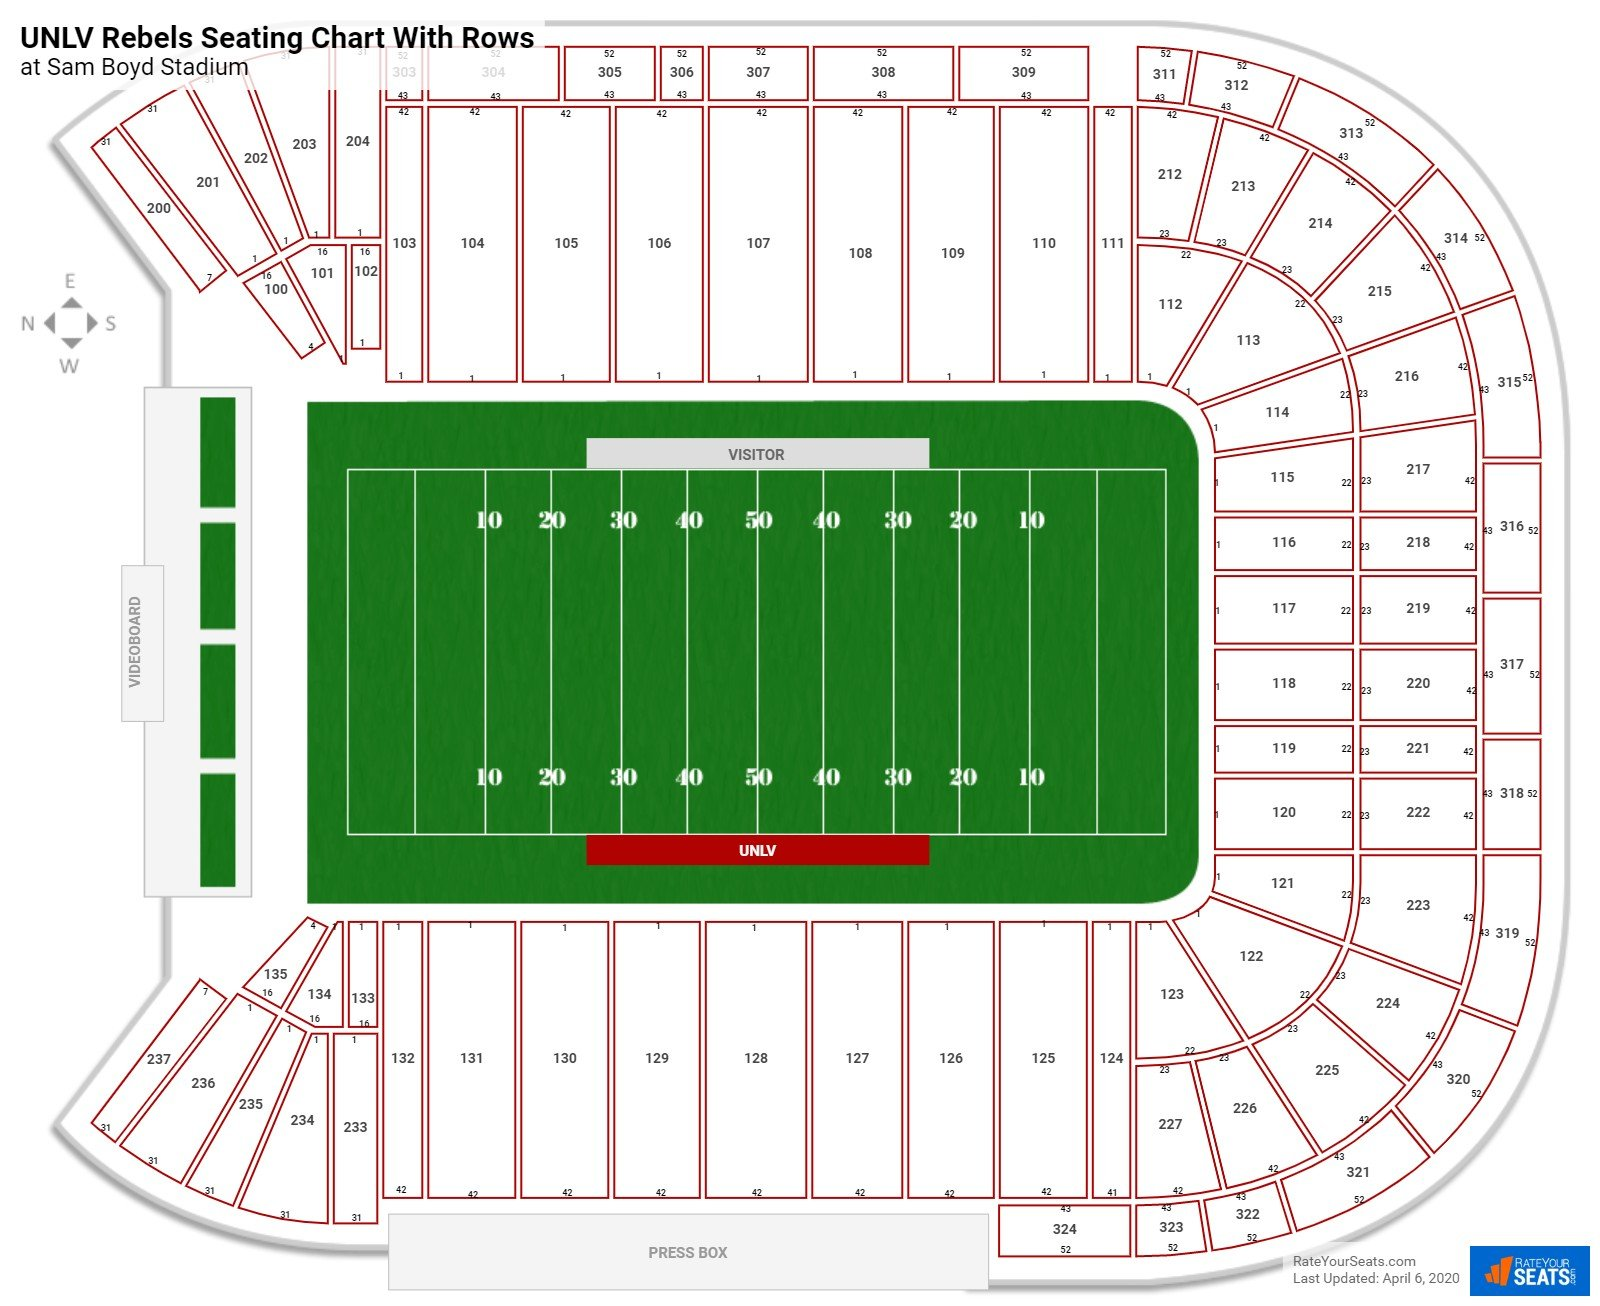 Sam Boyd Stadium seating chart with rows